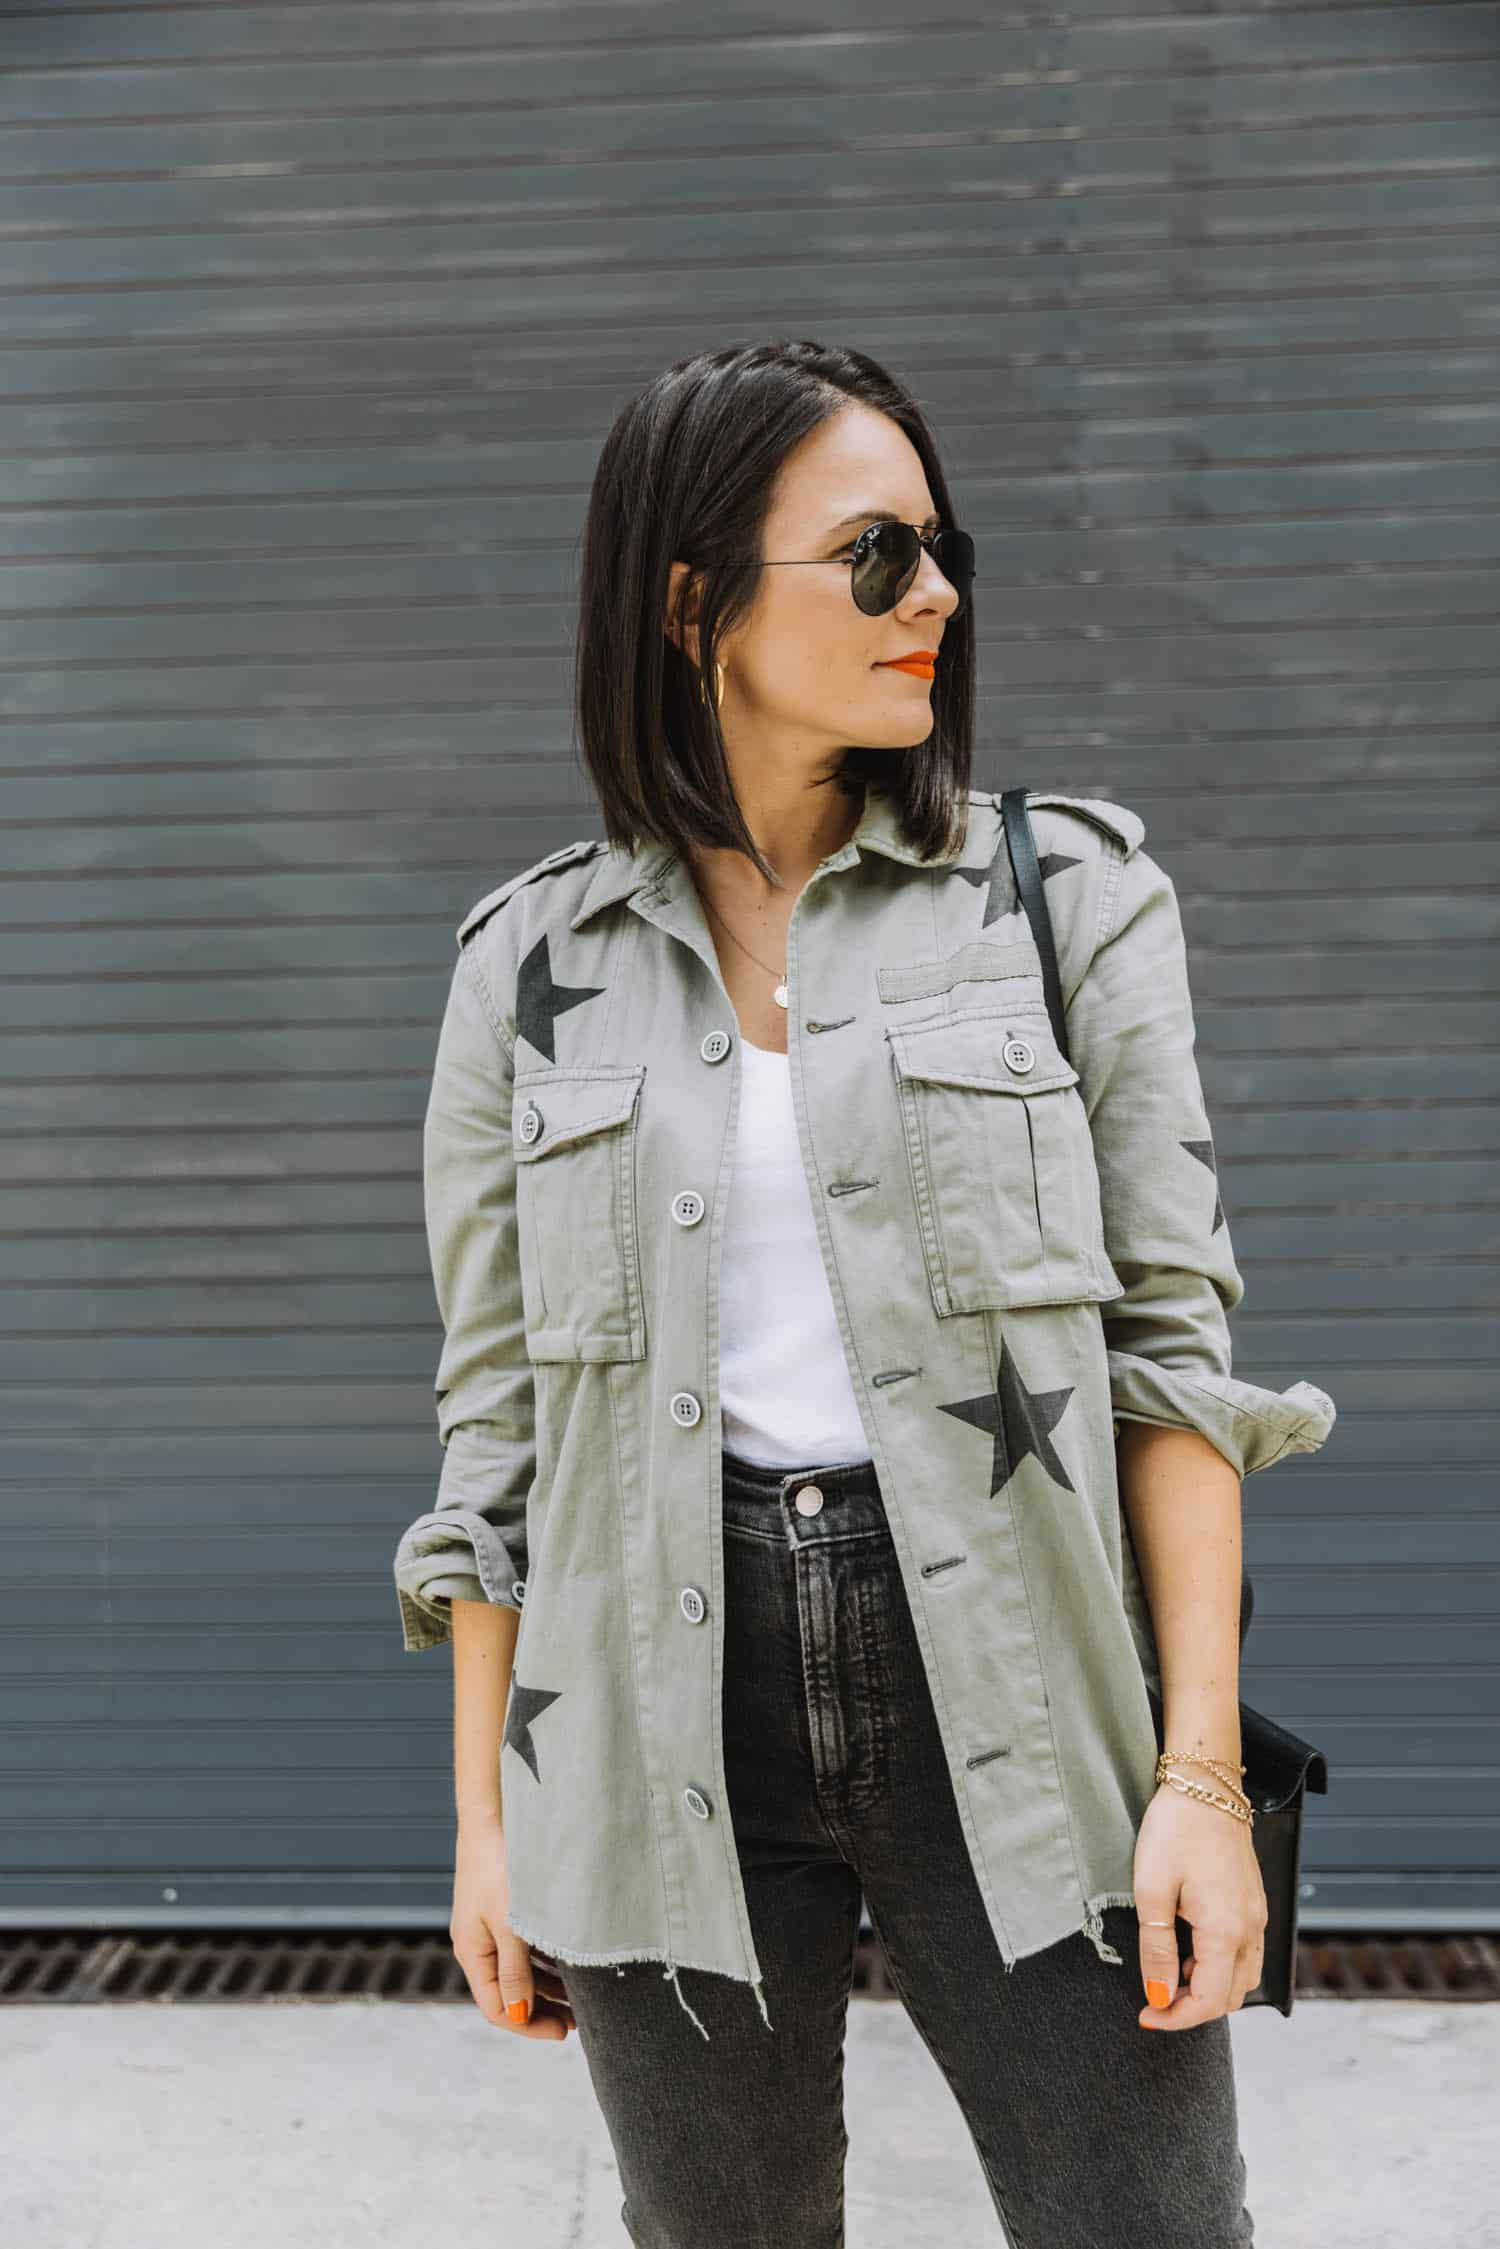 Utility jacket outfit ideas